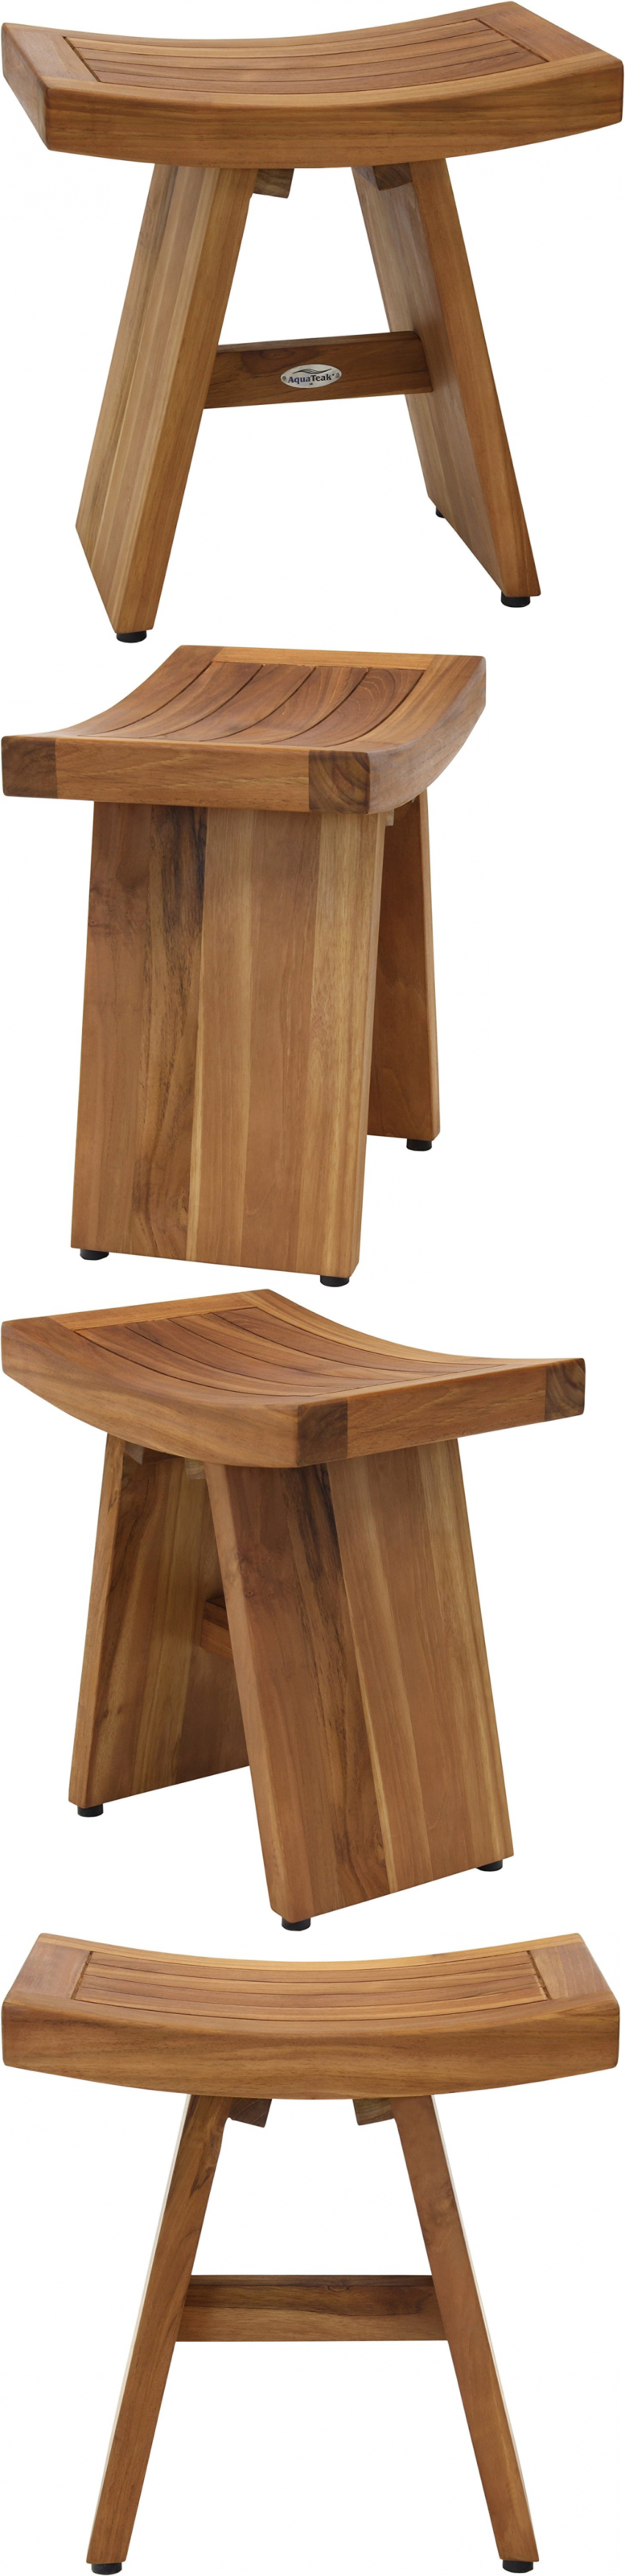 Shower and Bath Seats: The Original Asia 18 Teak Shower Bench Solid ...